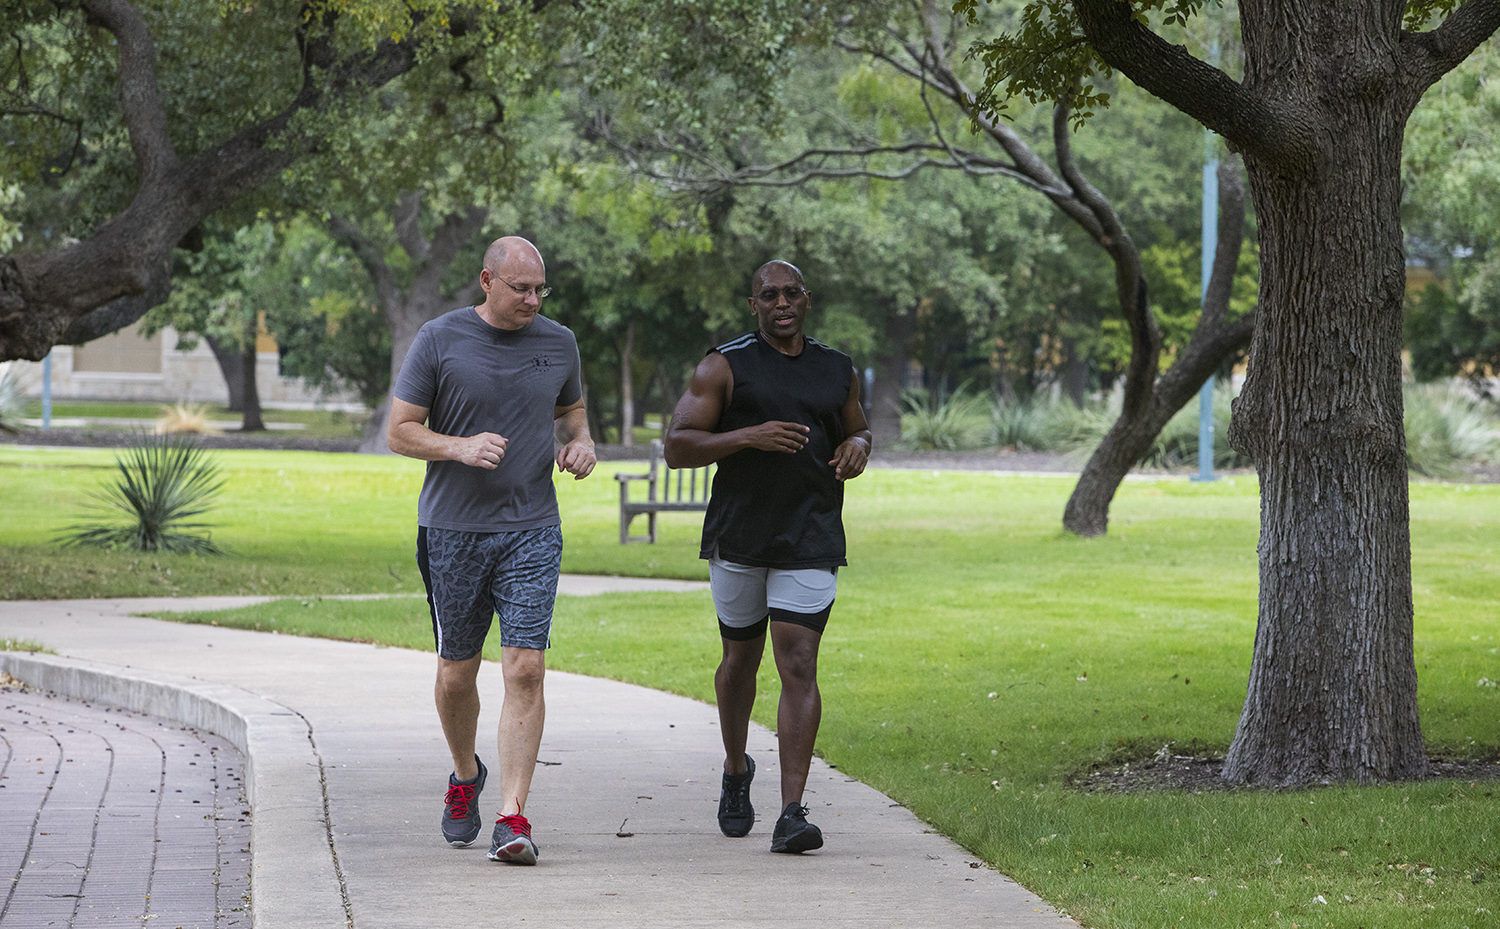 Two Valero employees jogging on a path